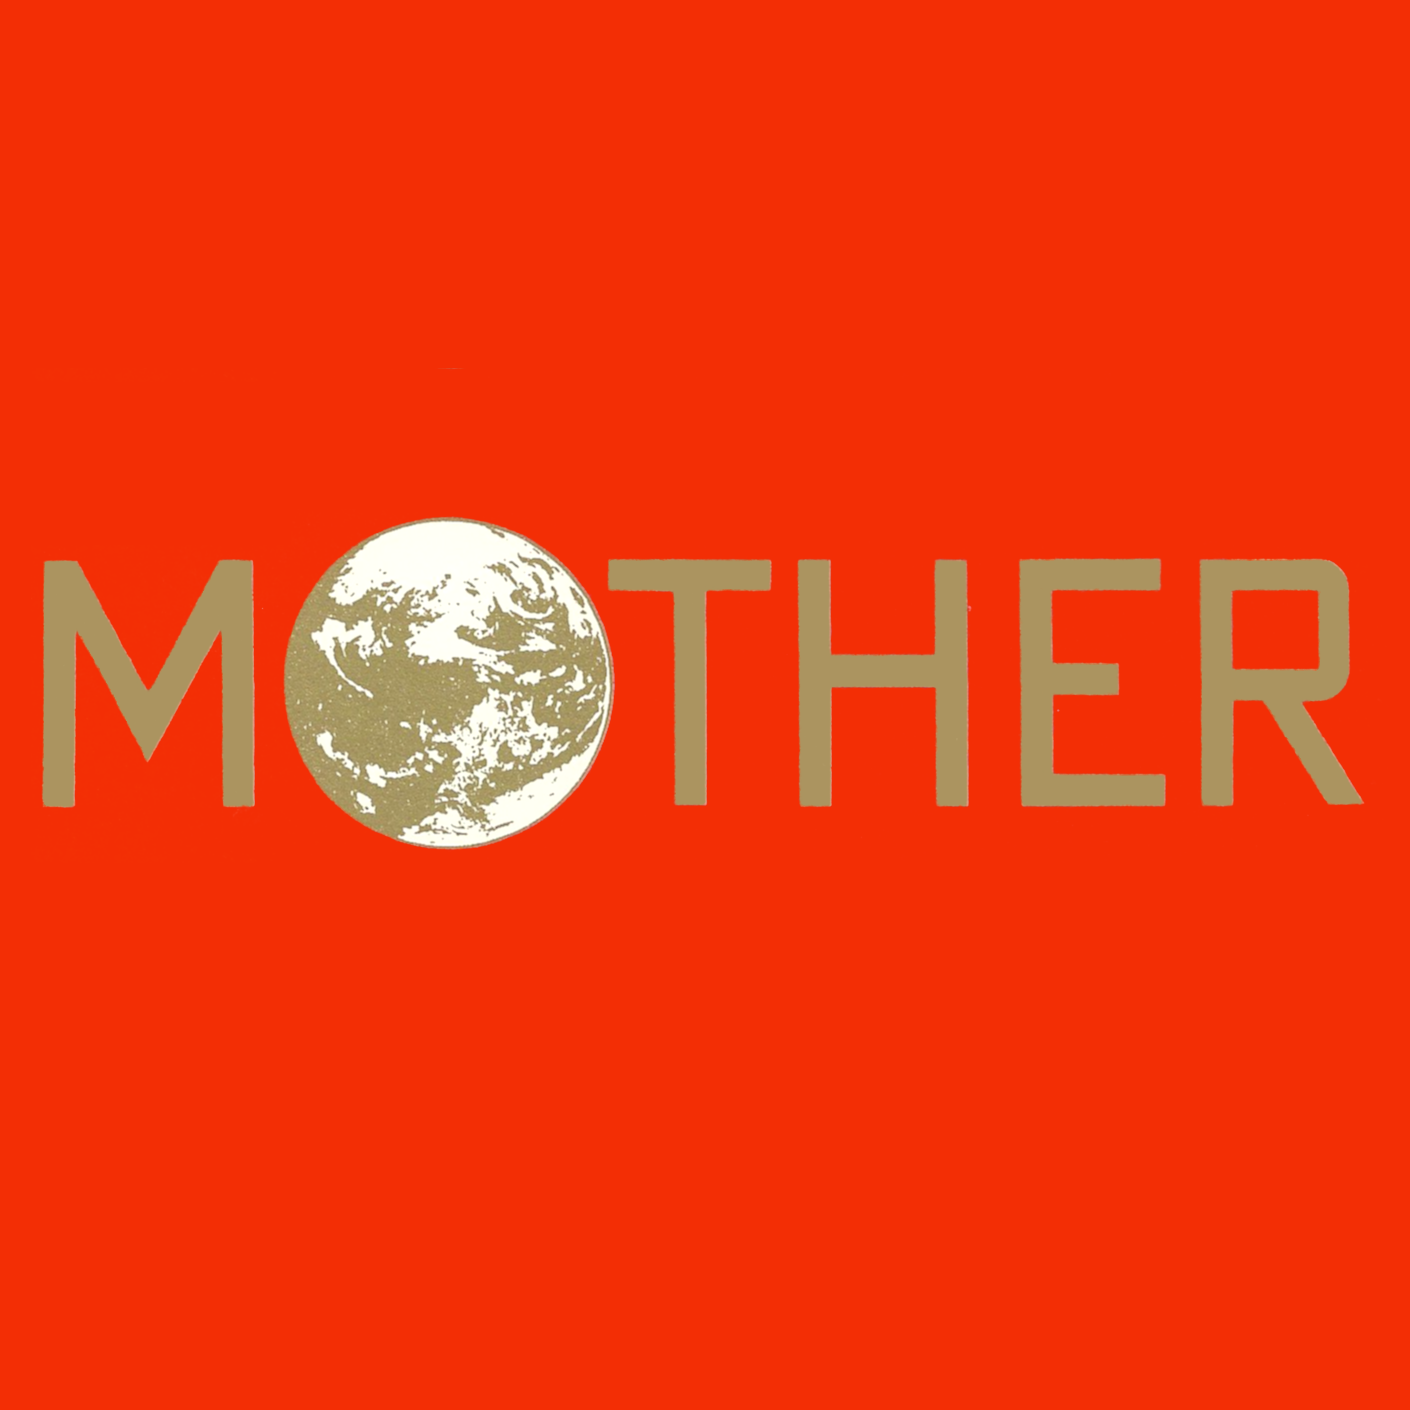 Mother Original Soundtrack Blip Blop